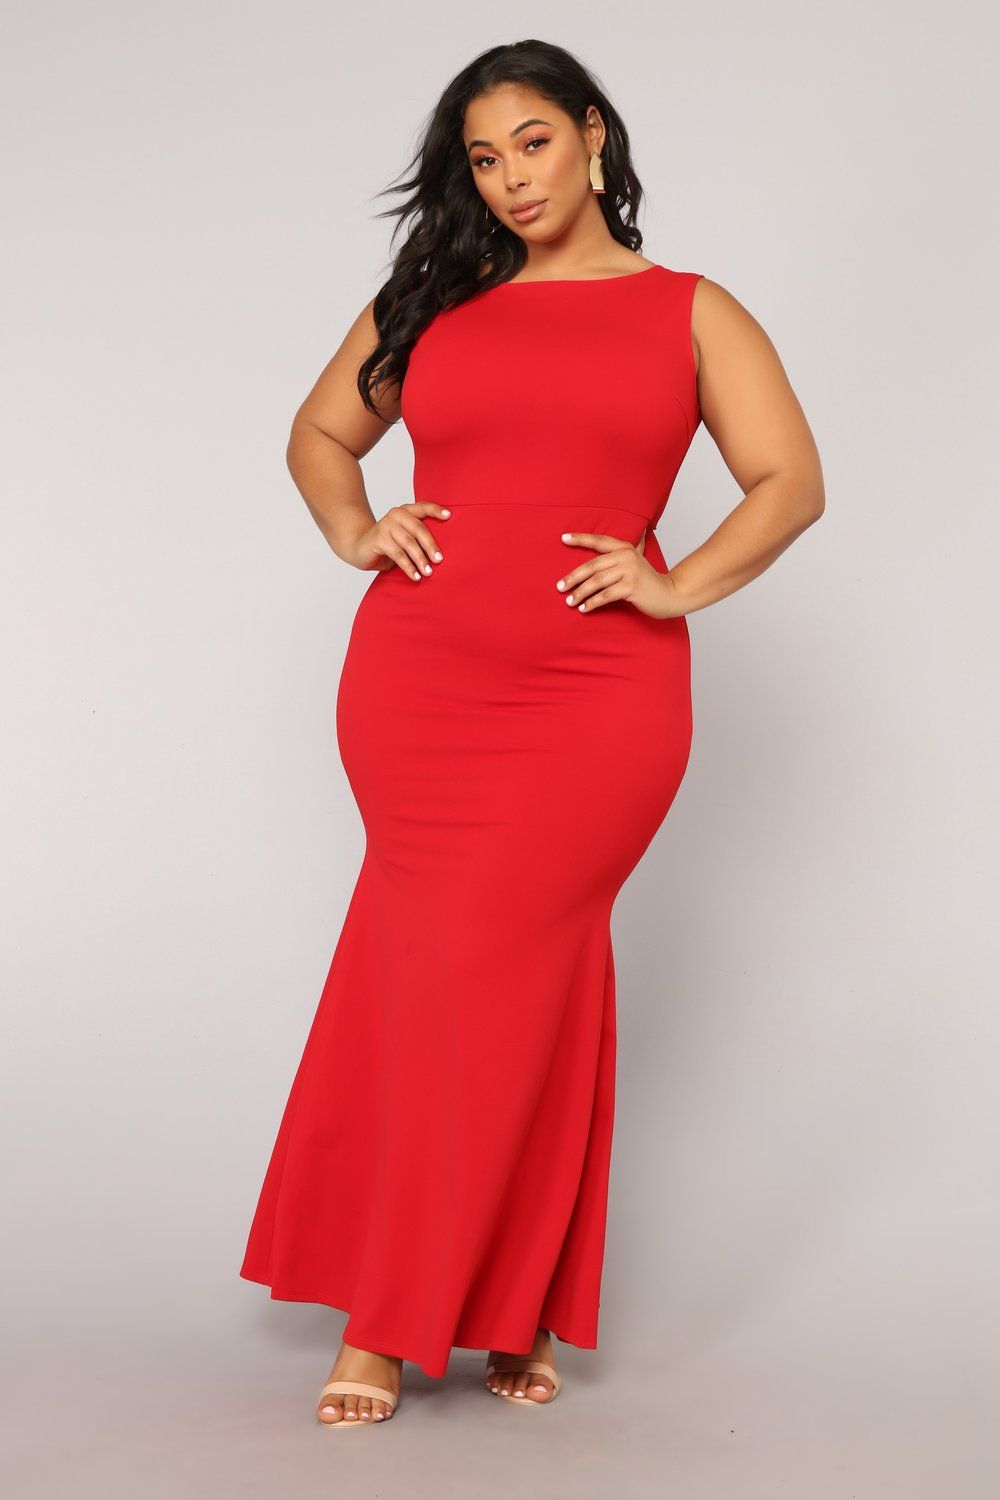 Such A Lady Ruffle Dress Red Red dress